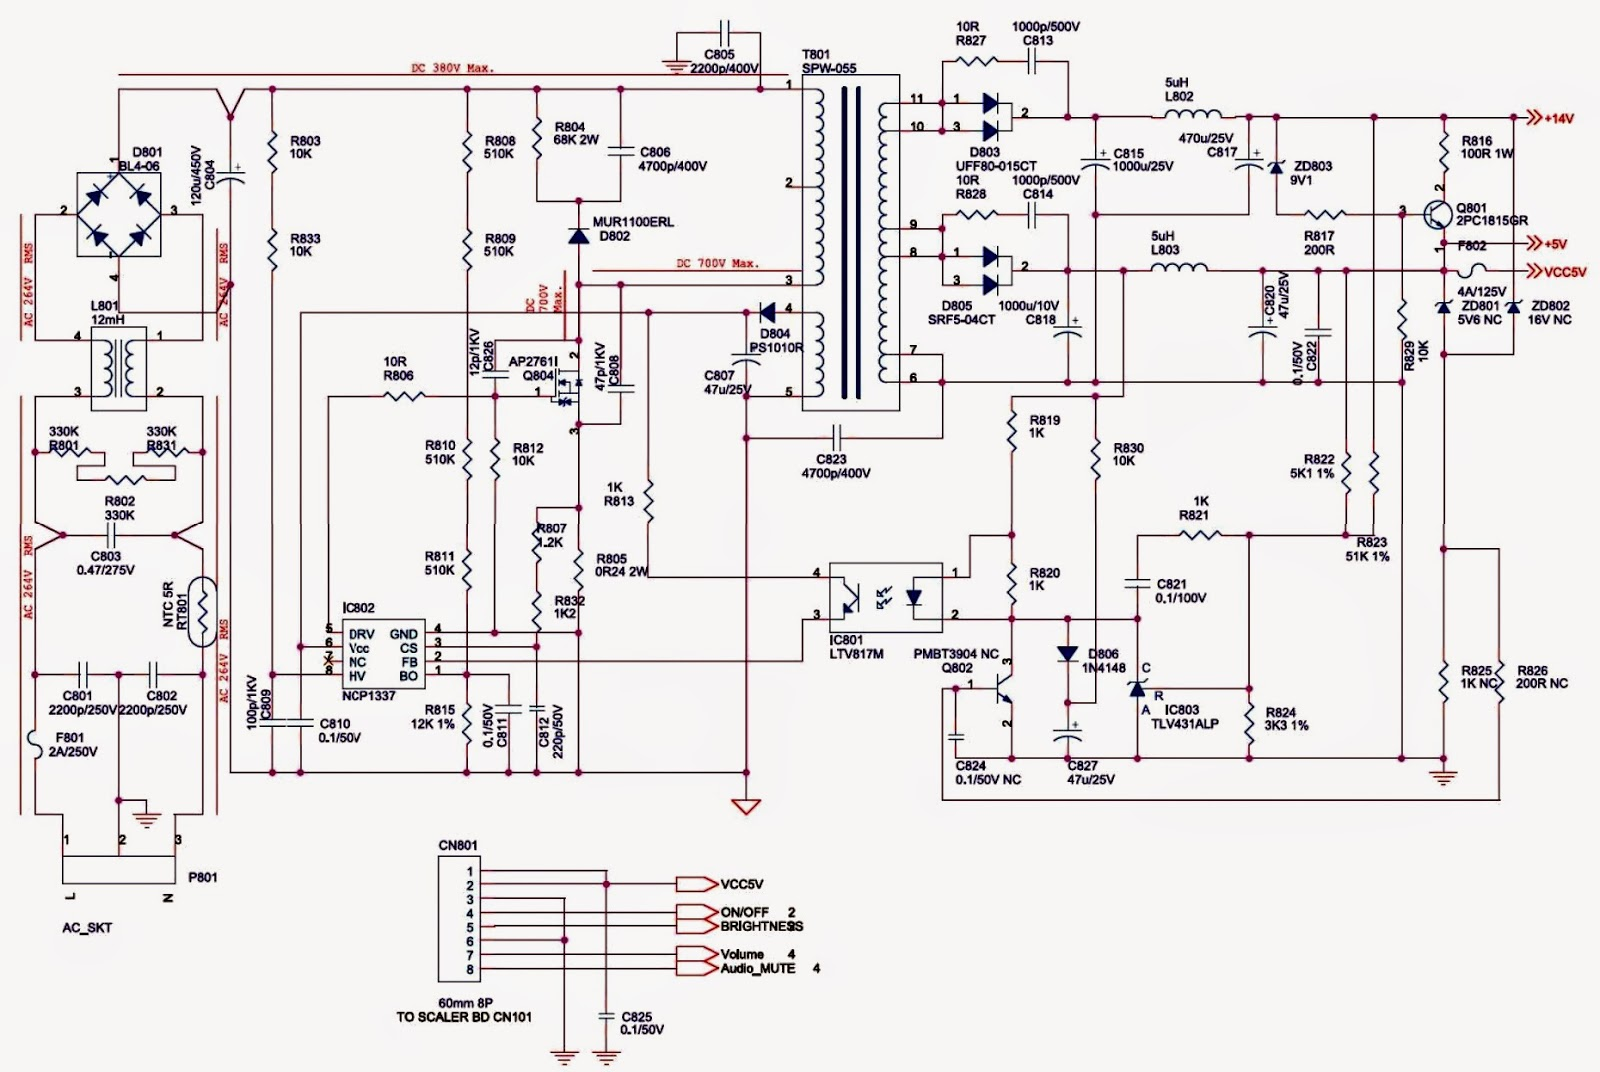 monitor power control wiring diagram electro help samsung 920nw     19 inch lcd    monitor    circuit  electro help samsung 920nw     19 inch lcd    monitor    circuit